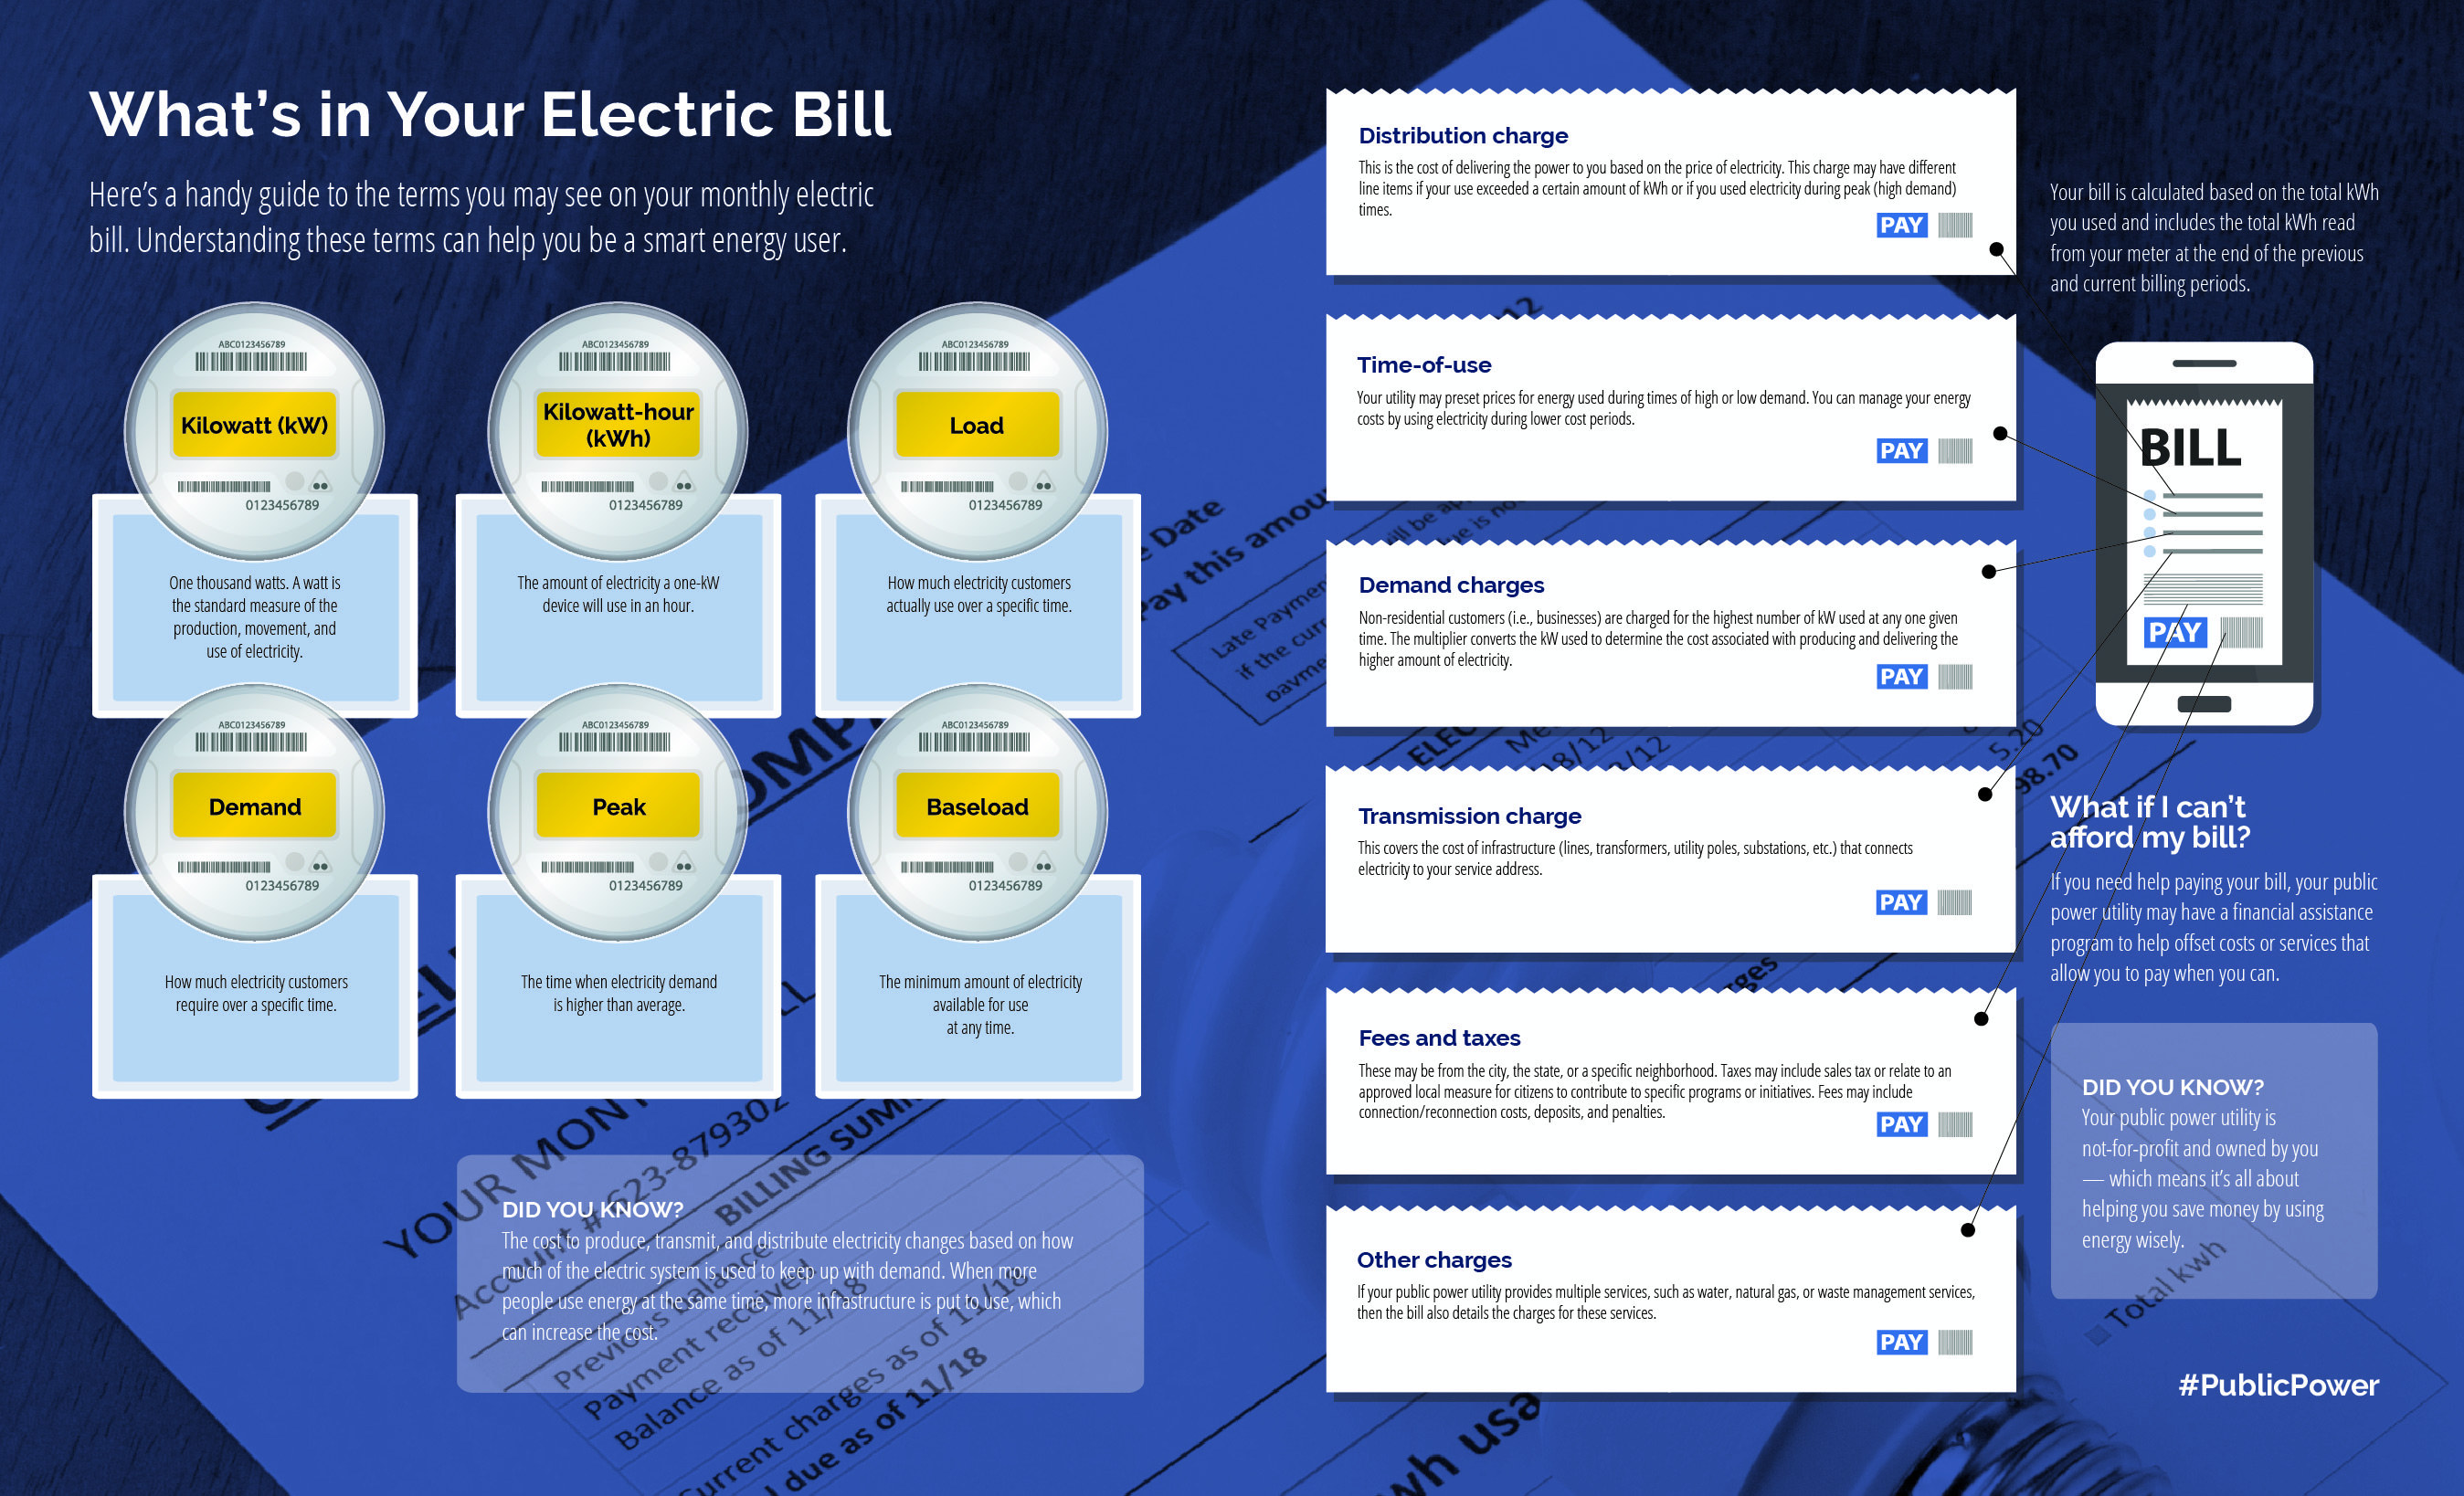 A graphic defining terms found in an electric bill